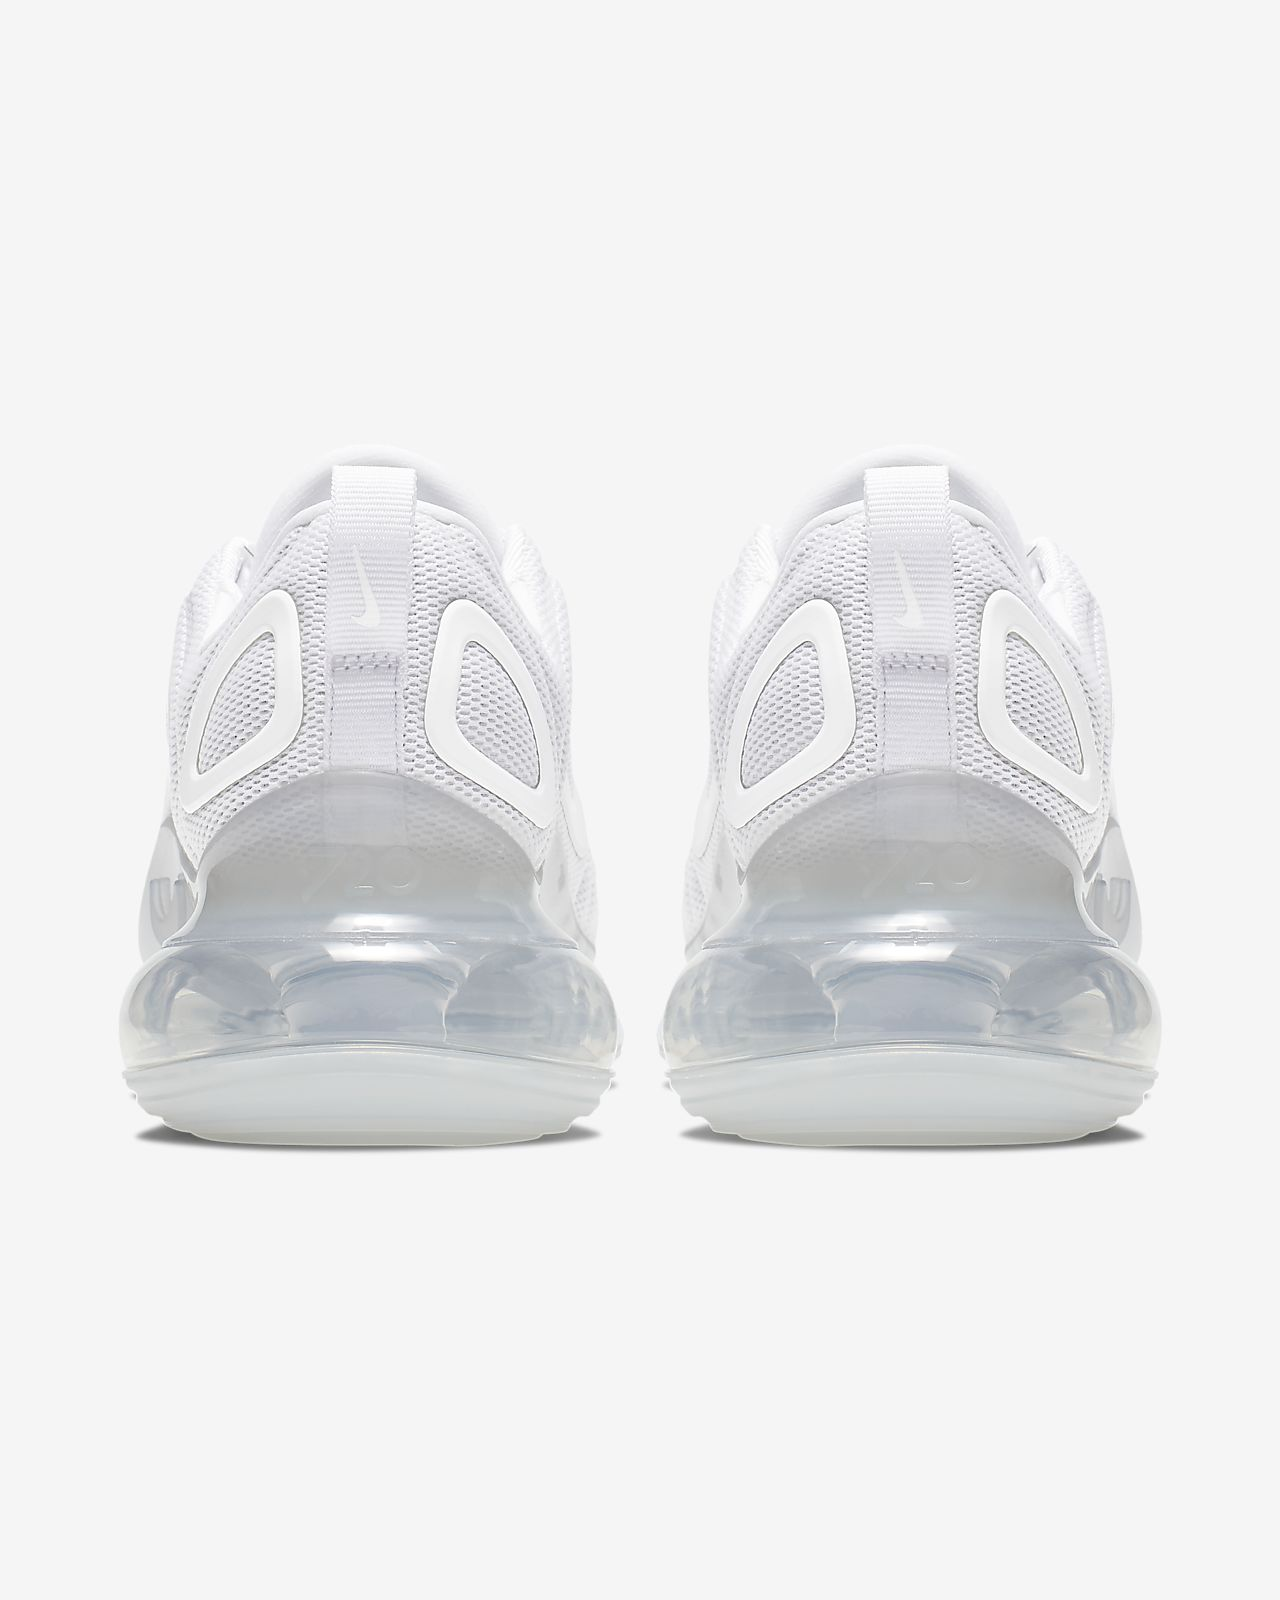 shoes blue green white nike airmax lovely nike air max color